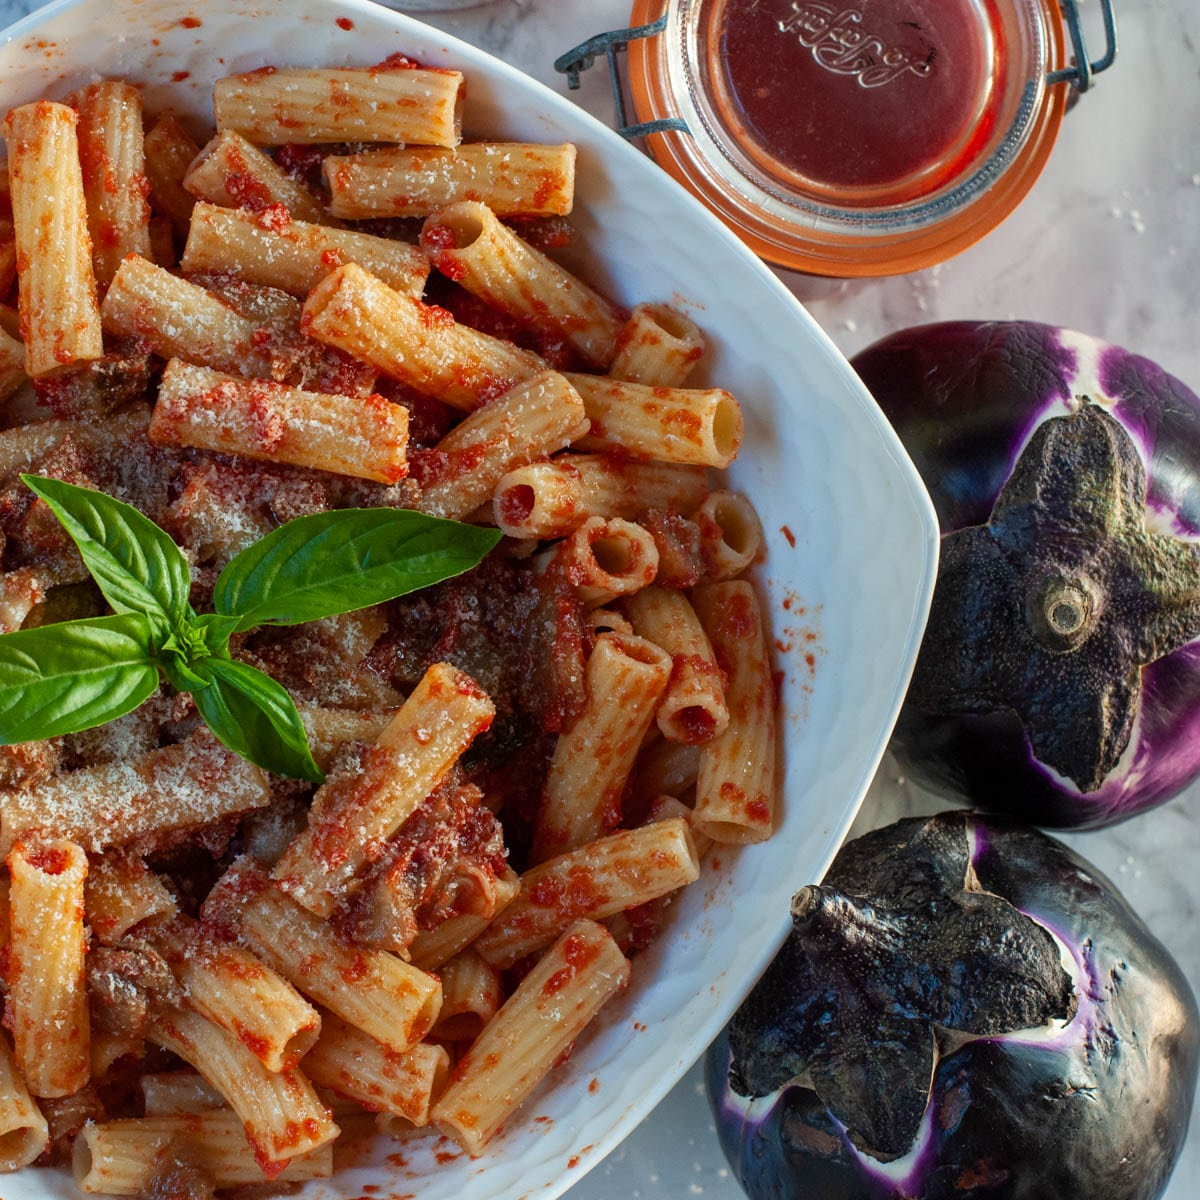 Pasta alla Norma on a serving dish with a fork taking some pasta